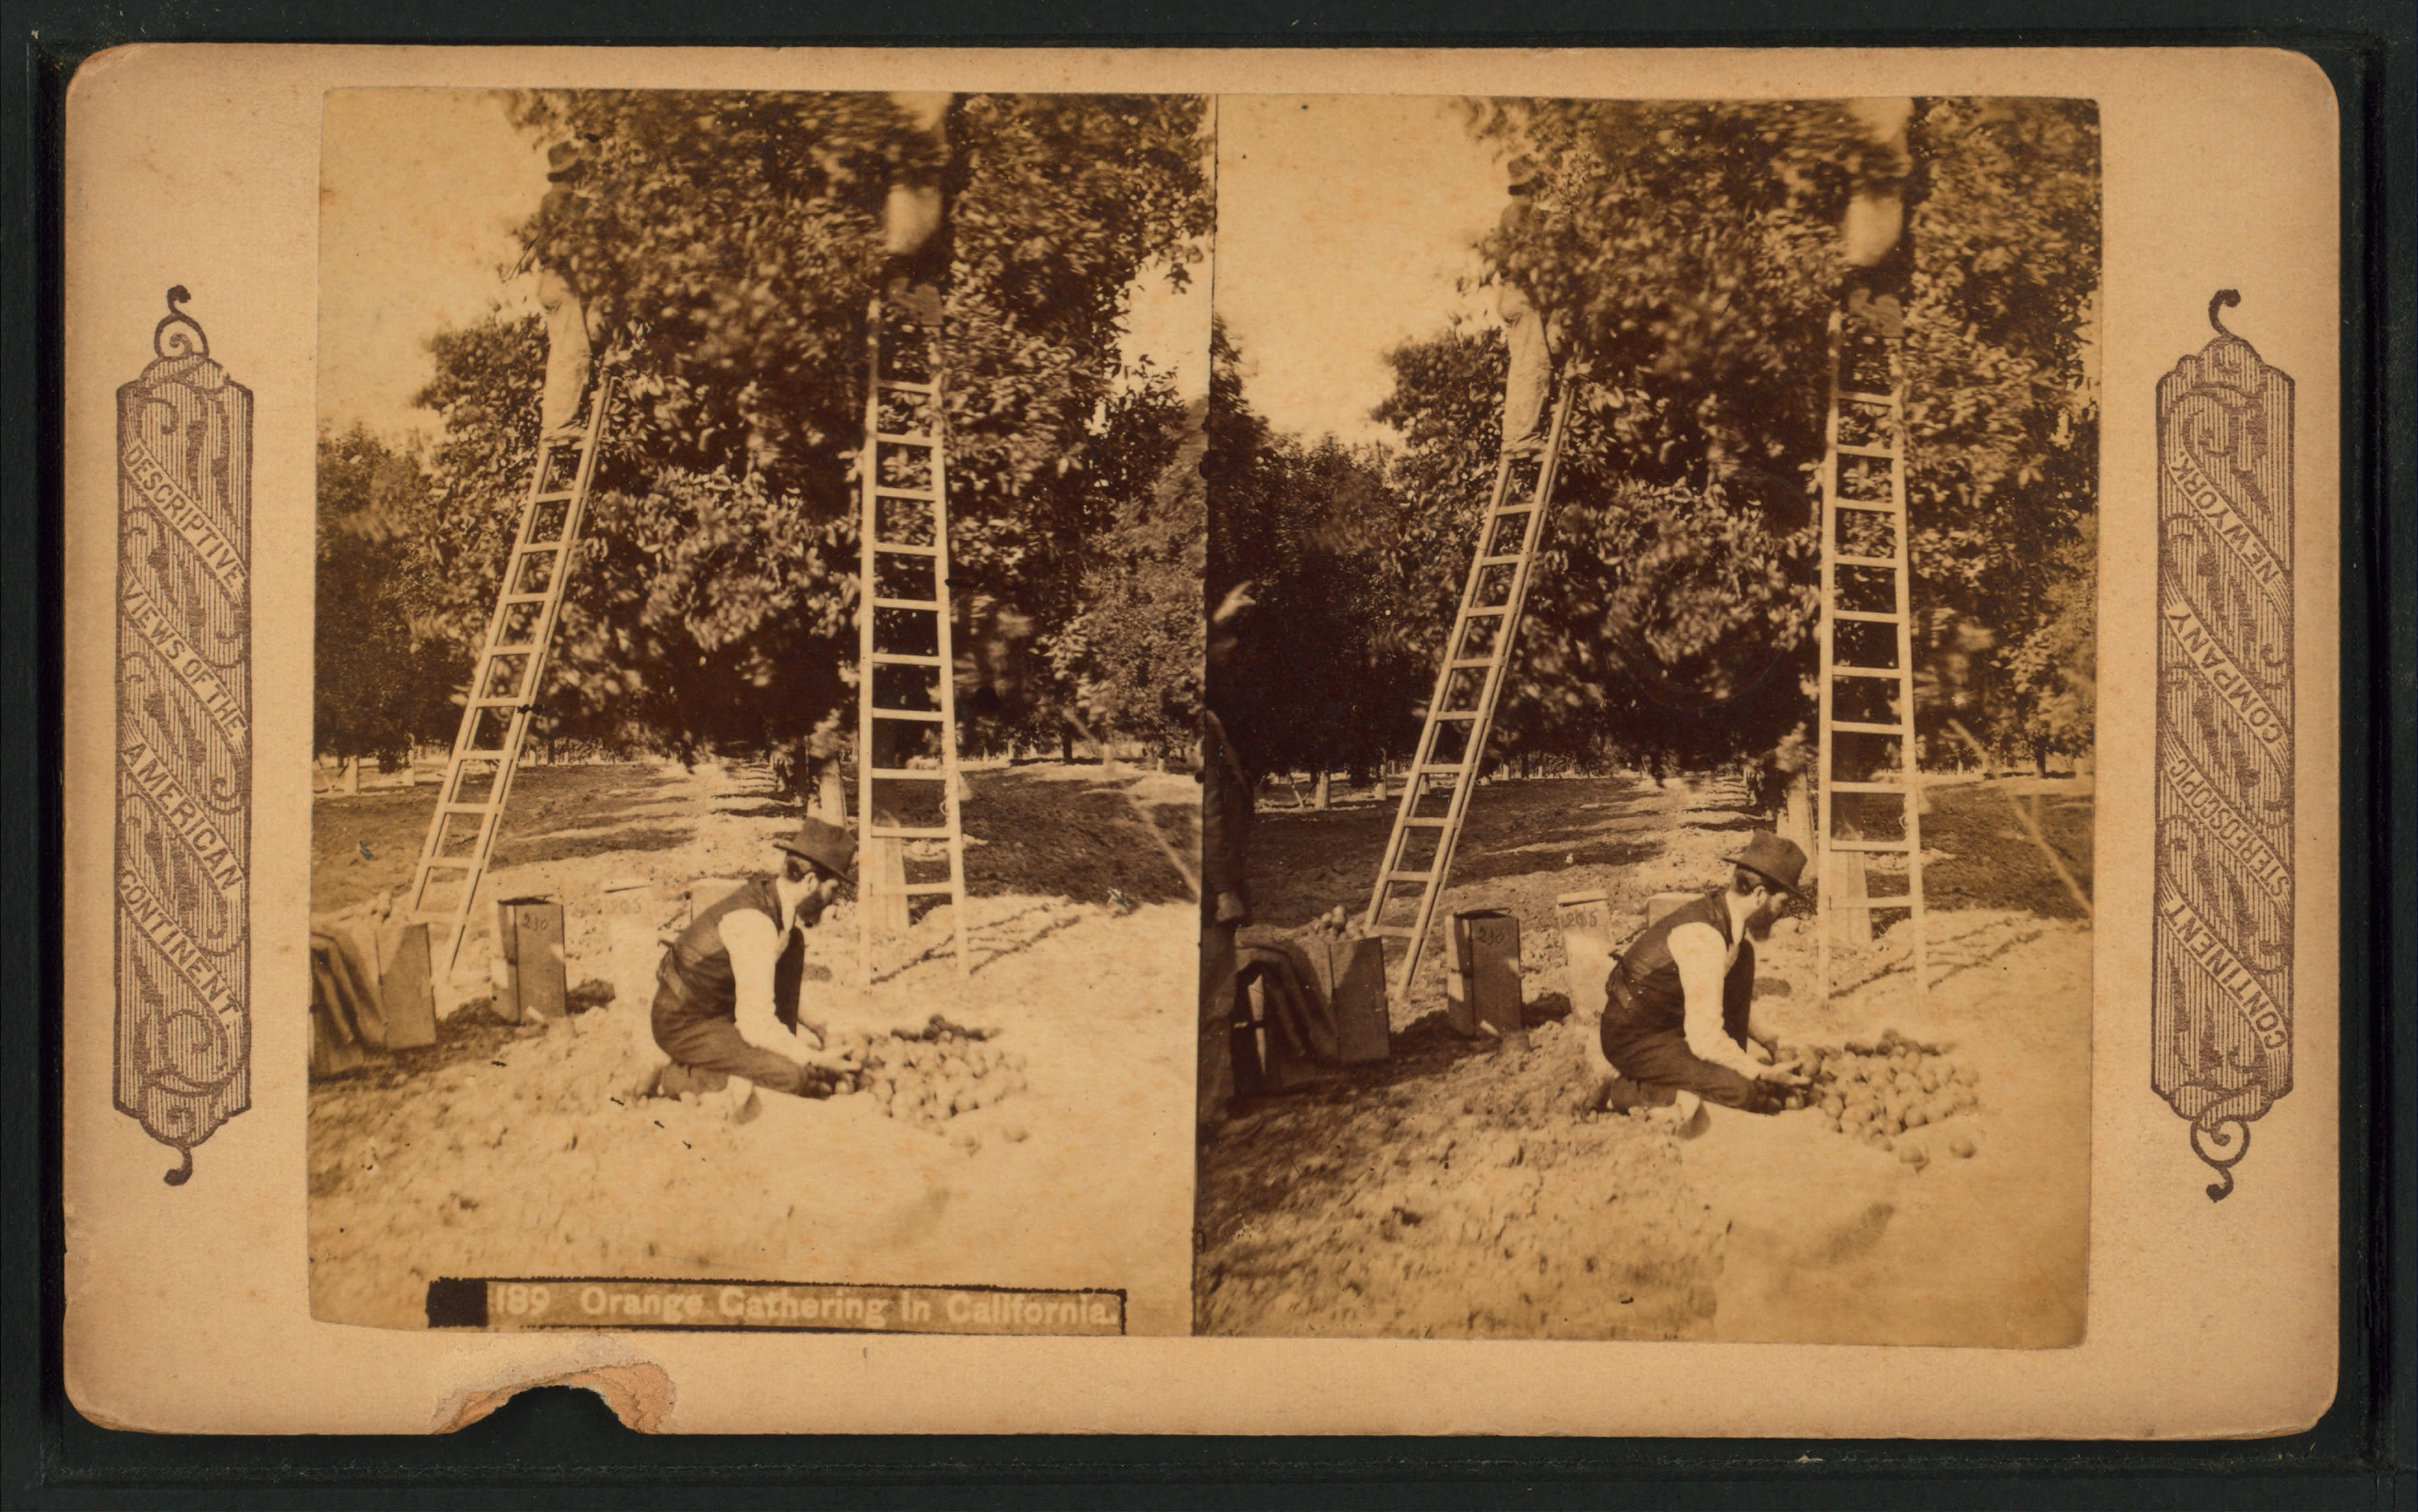 Orange gathering in California, from Robert N. Dennis collection of stereoscopic views